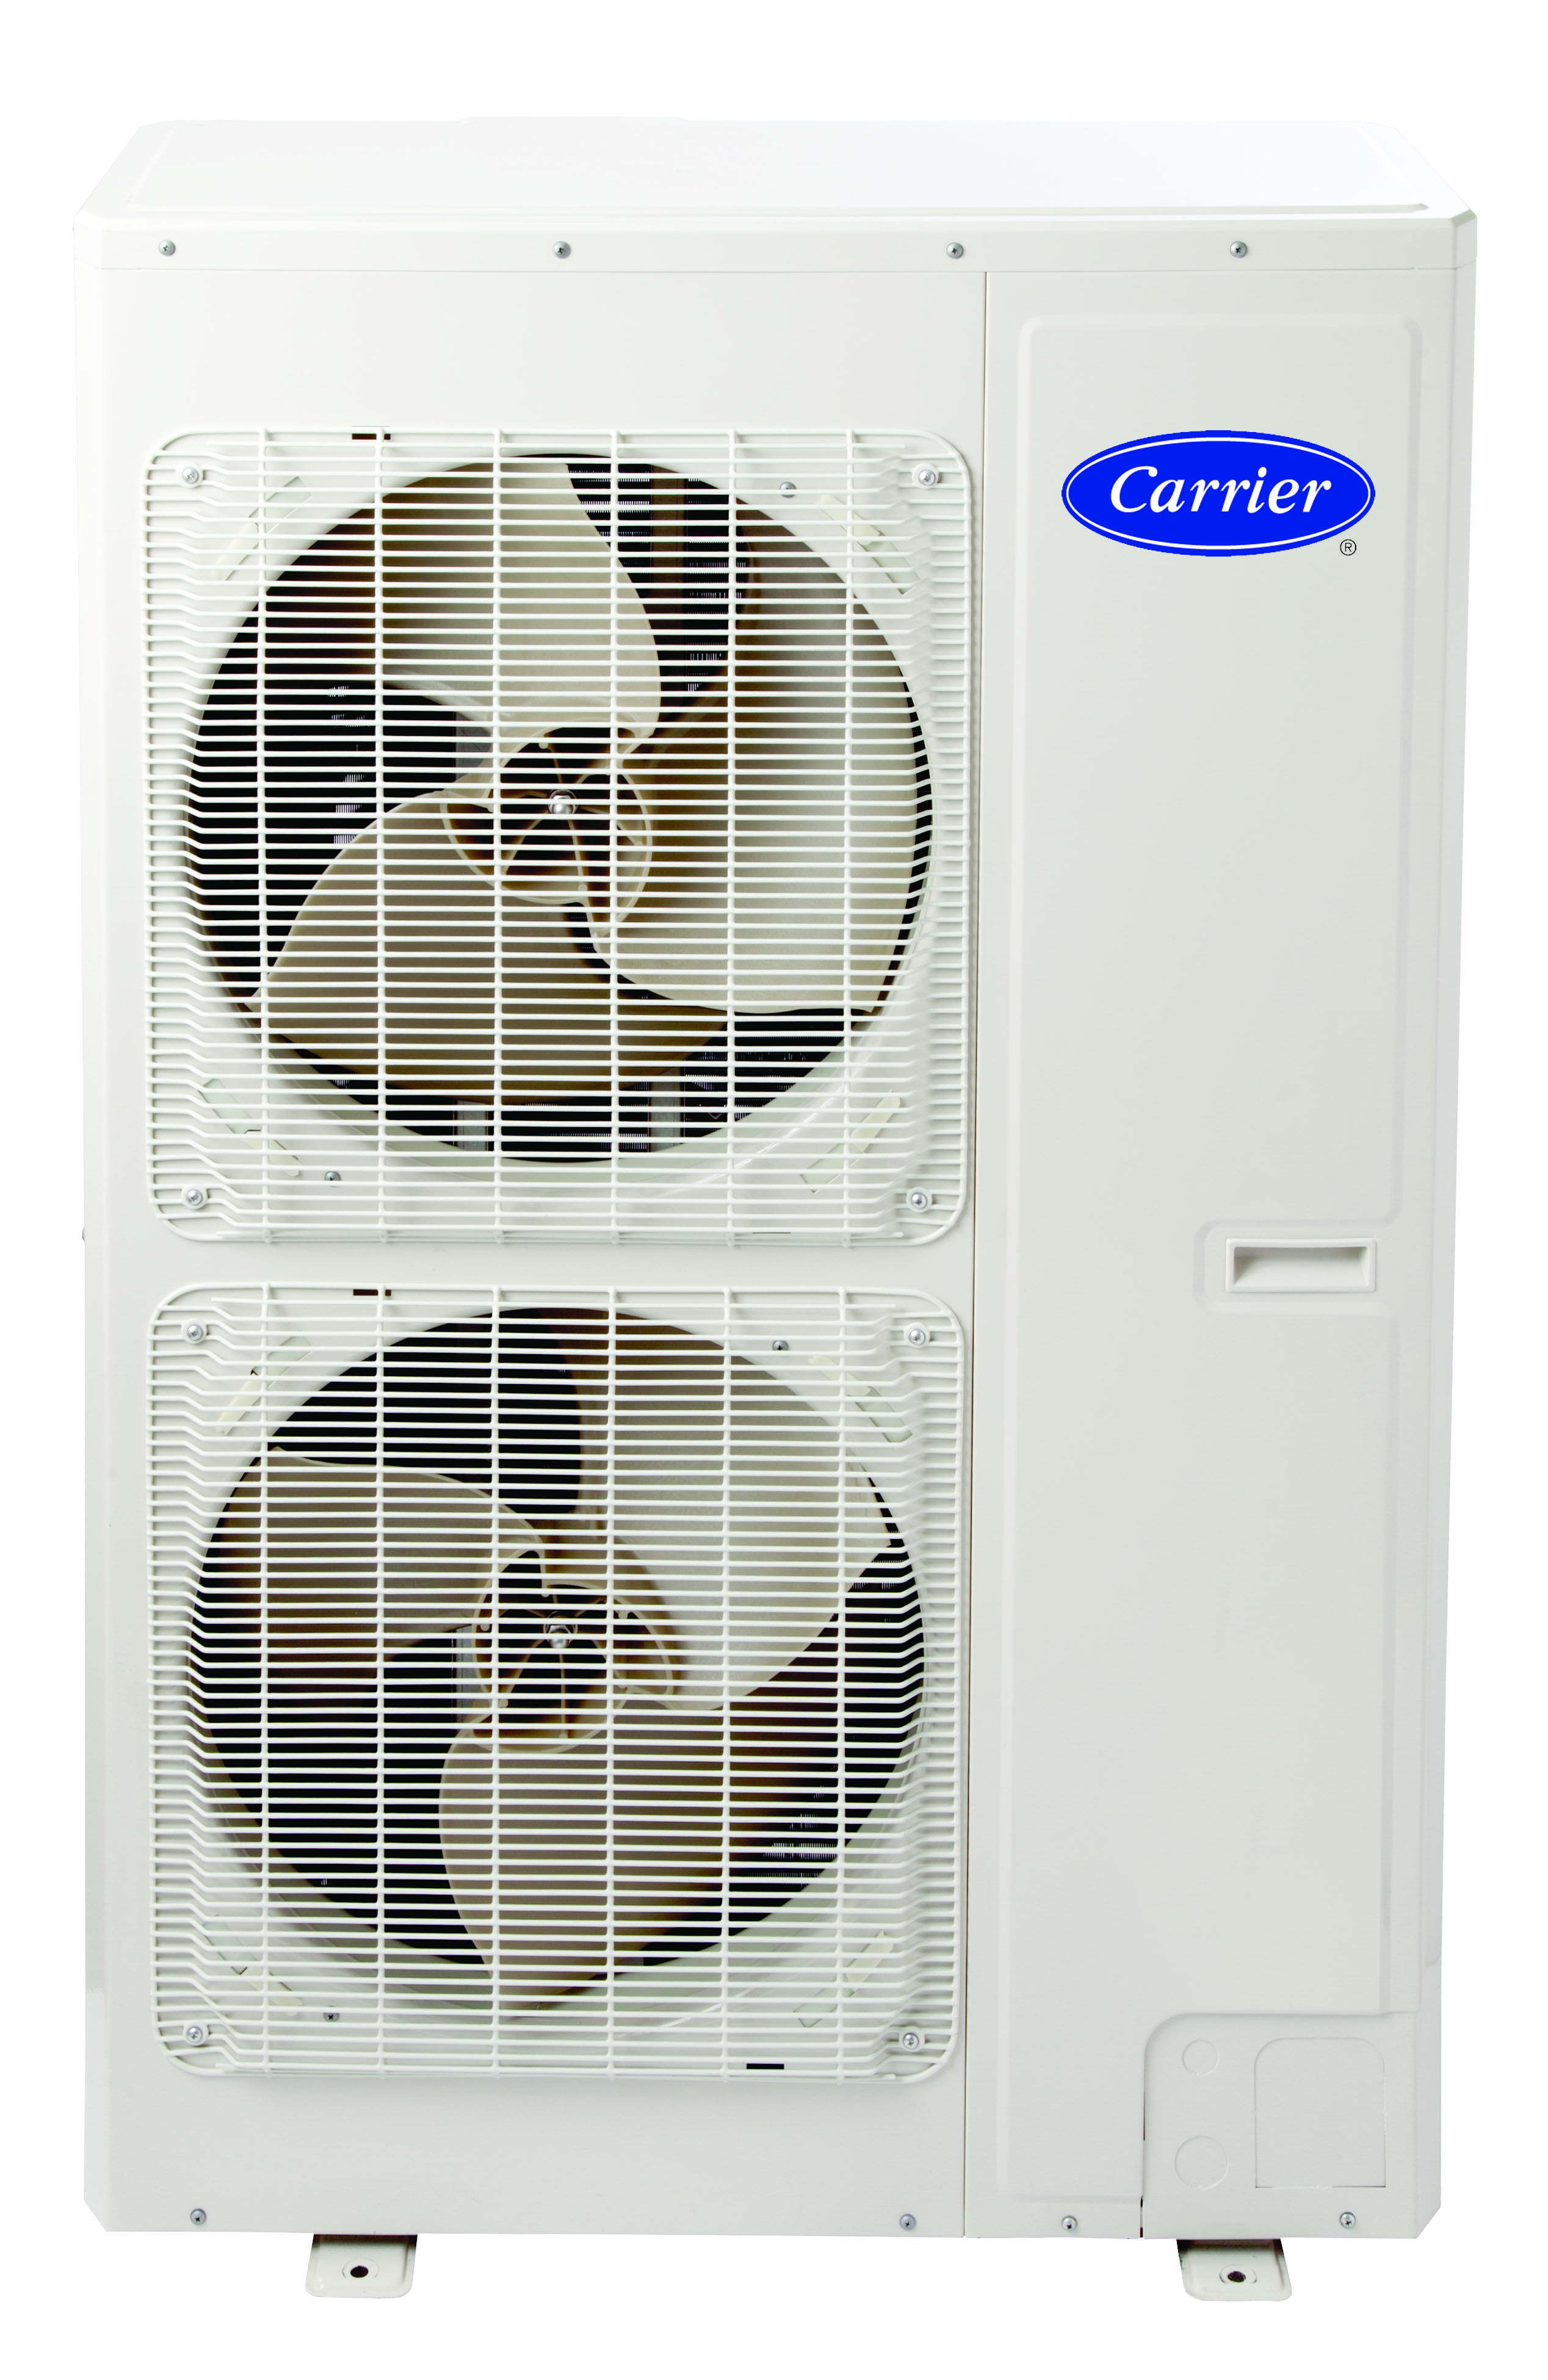 Carrier Ductless Split Outdoor Unit For Heating Cooling Your Home Ductless Ductless Mini Split Heating And Cooling